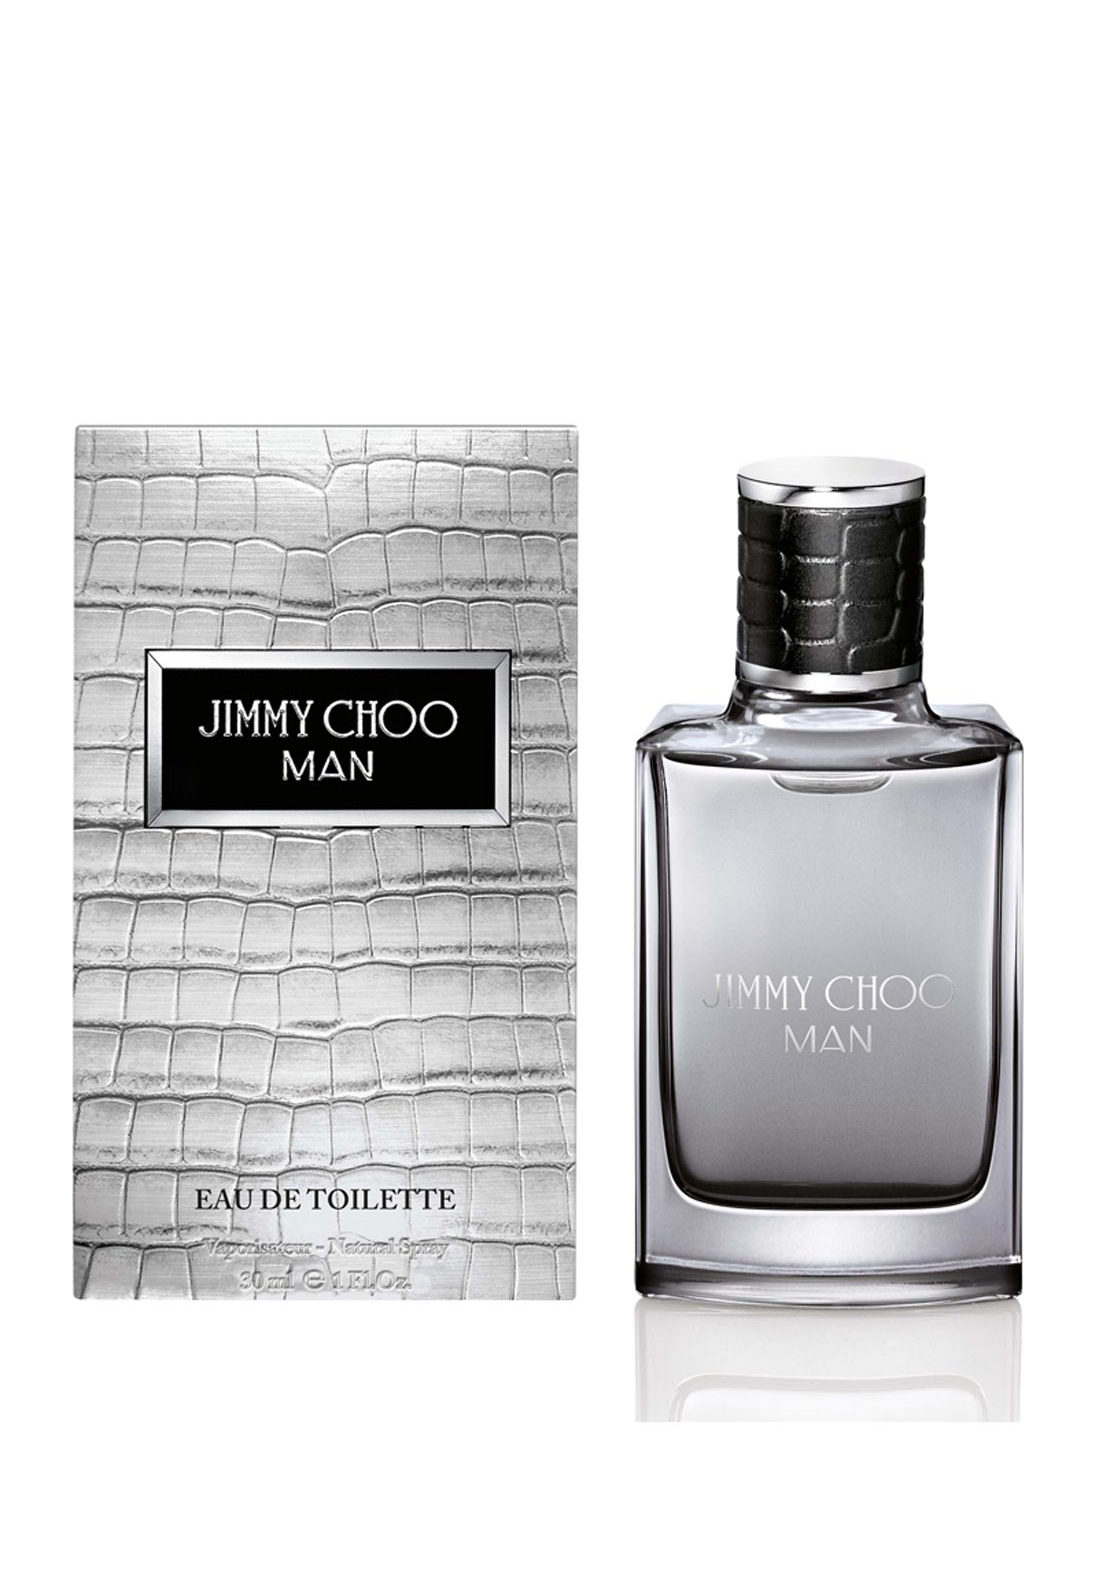 Jimmy Choo Man Eau De Toilette, 50ml